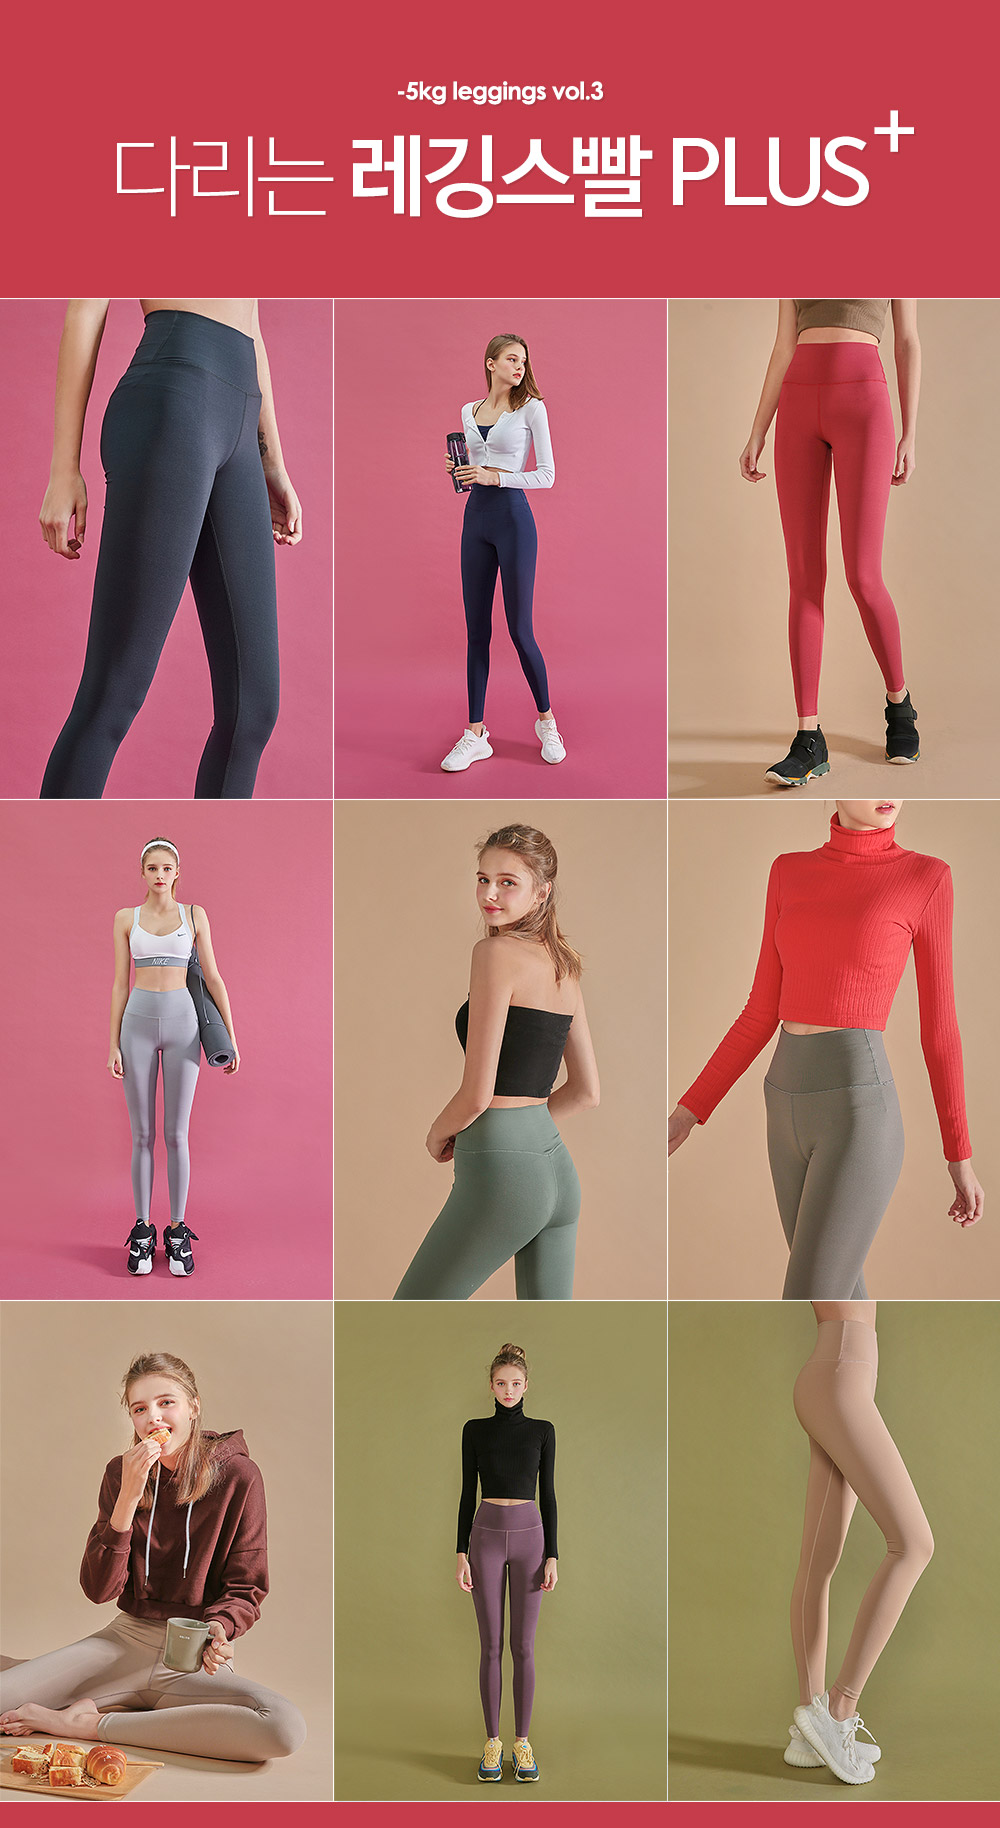 //cdn.nhanh.vn/cdn/store/29770/psCT/20190108/11027736/_5Kg_Perfect_Line_Leggings_Plus_(2019_22_7).jpg